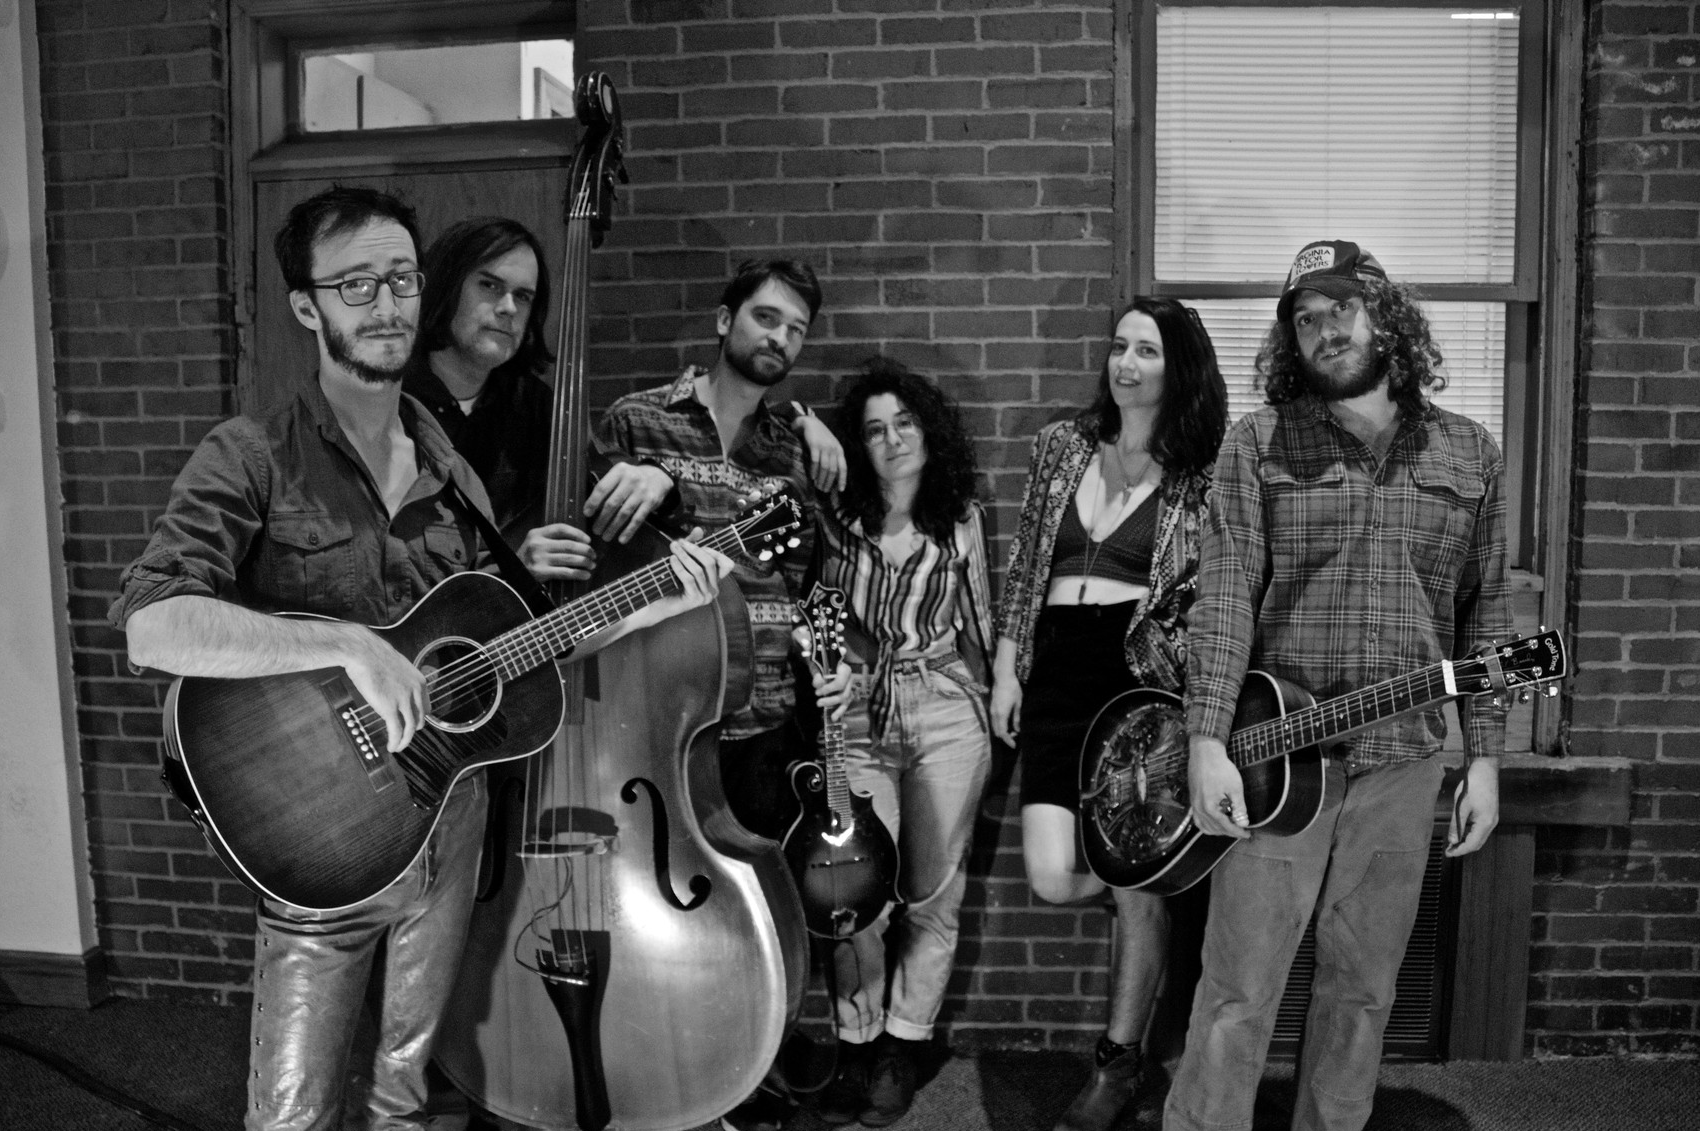 Buffalo Rose - Formed in Pittsburgh, PA in 2016, the group blends folk, soul, and bluegrass into something amorphously Americana, but decidedly their own. Three prominent singers (Shane McLaughlin, Lucy Clabby, and Rosanna Spindler) provide stunning vocal harmonies over dynamic, engrossing layers of stringed instruments. Specifically, acoustic guitar (McLaughlin), upright bass (Jason Rafalak), mandolin (Bryce Rabideau), and dobro (Malcolm Inglis.) Their sharp sense of rhythmic experimentation and evocative, storytelling lyricism come together for a sound with both shimmer and punch; it's foot-tapping and breathtaking in turn. Buffalo Rose offers a warm, passionate homage to America's classic musical traditions, with modern twists that keep things interesting—and damn fun.